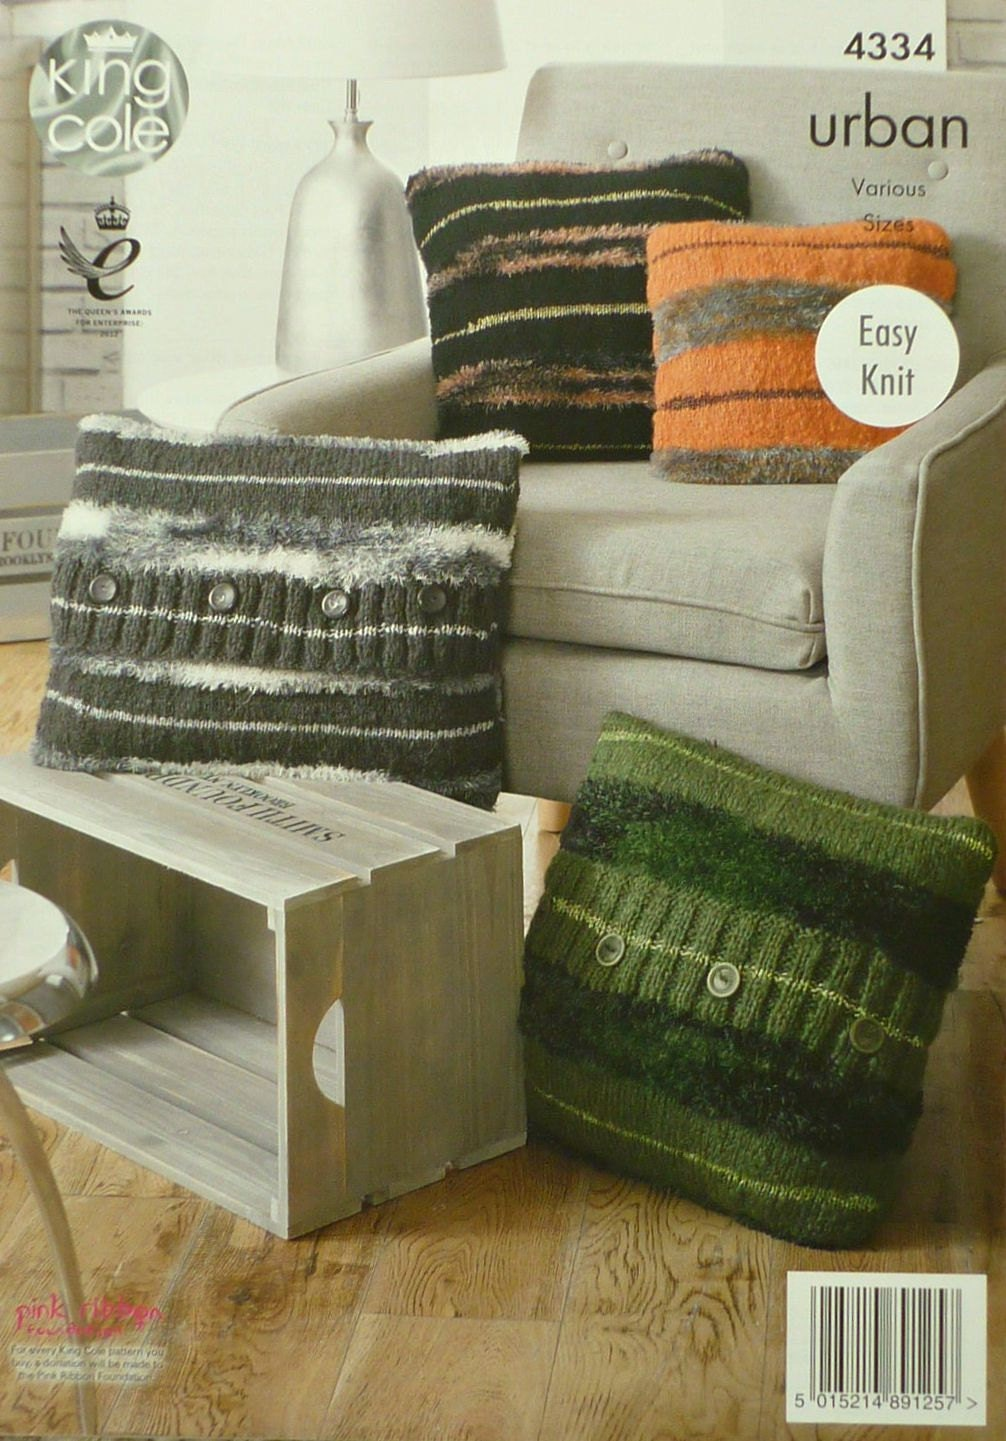 Cushion Knitting Pattern K4334 Square, Oblong Buttoned and Zipped Cushions (P...